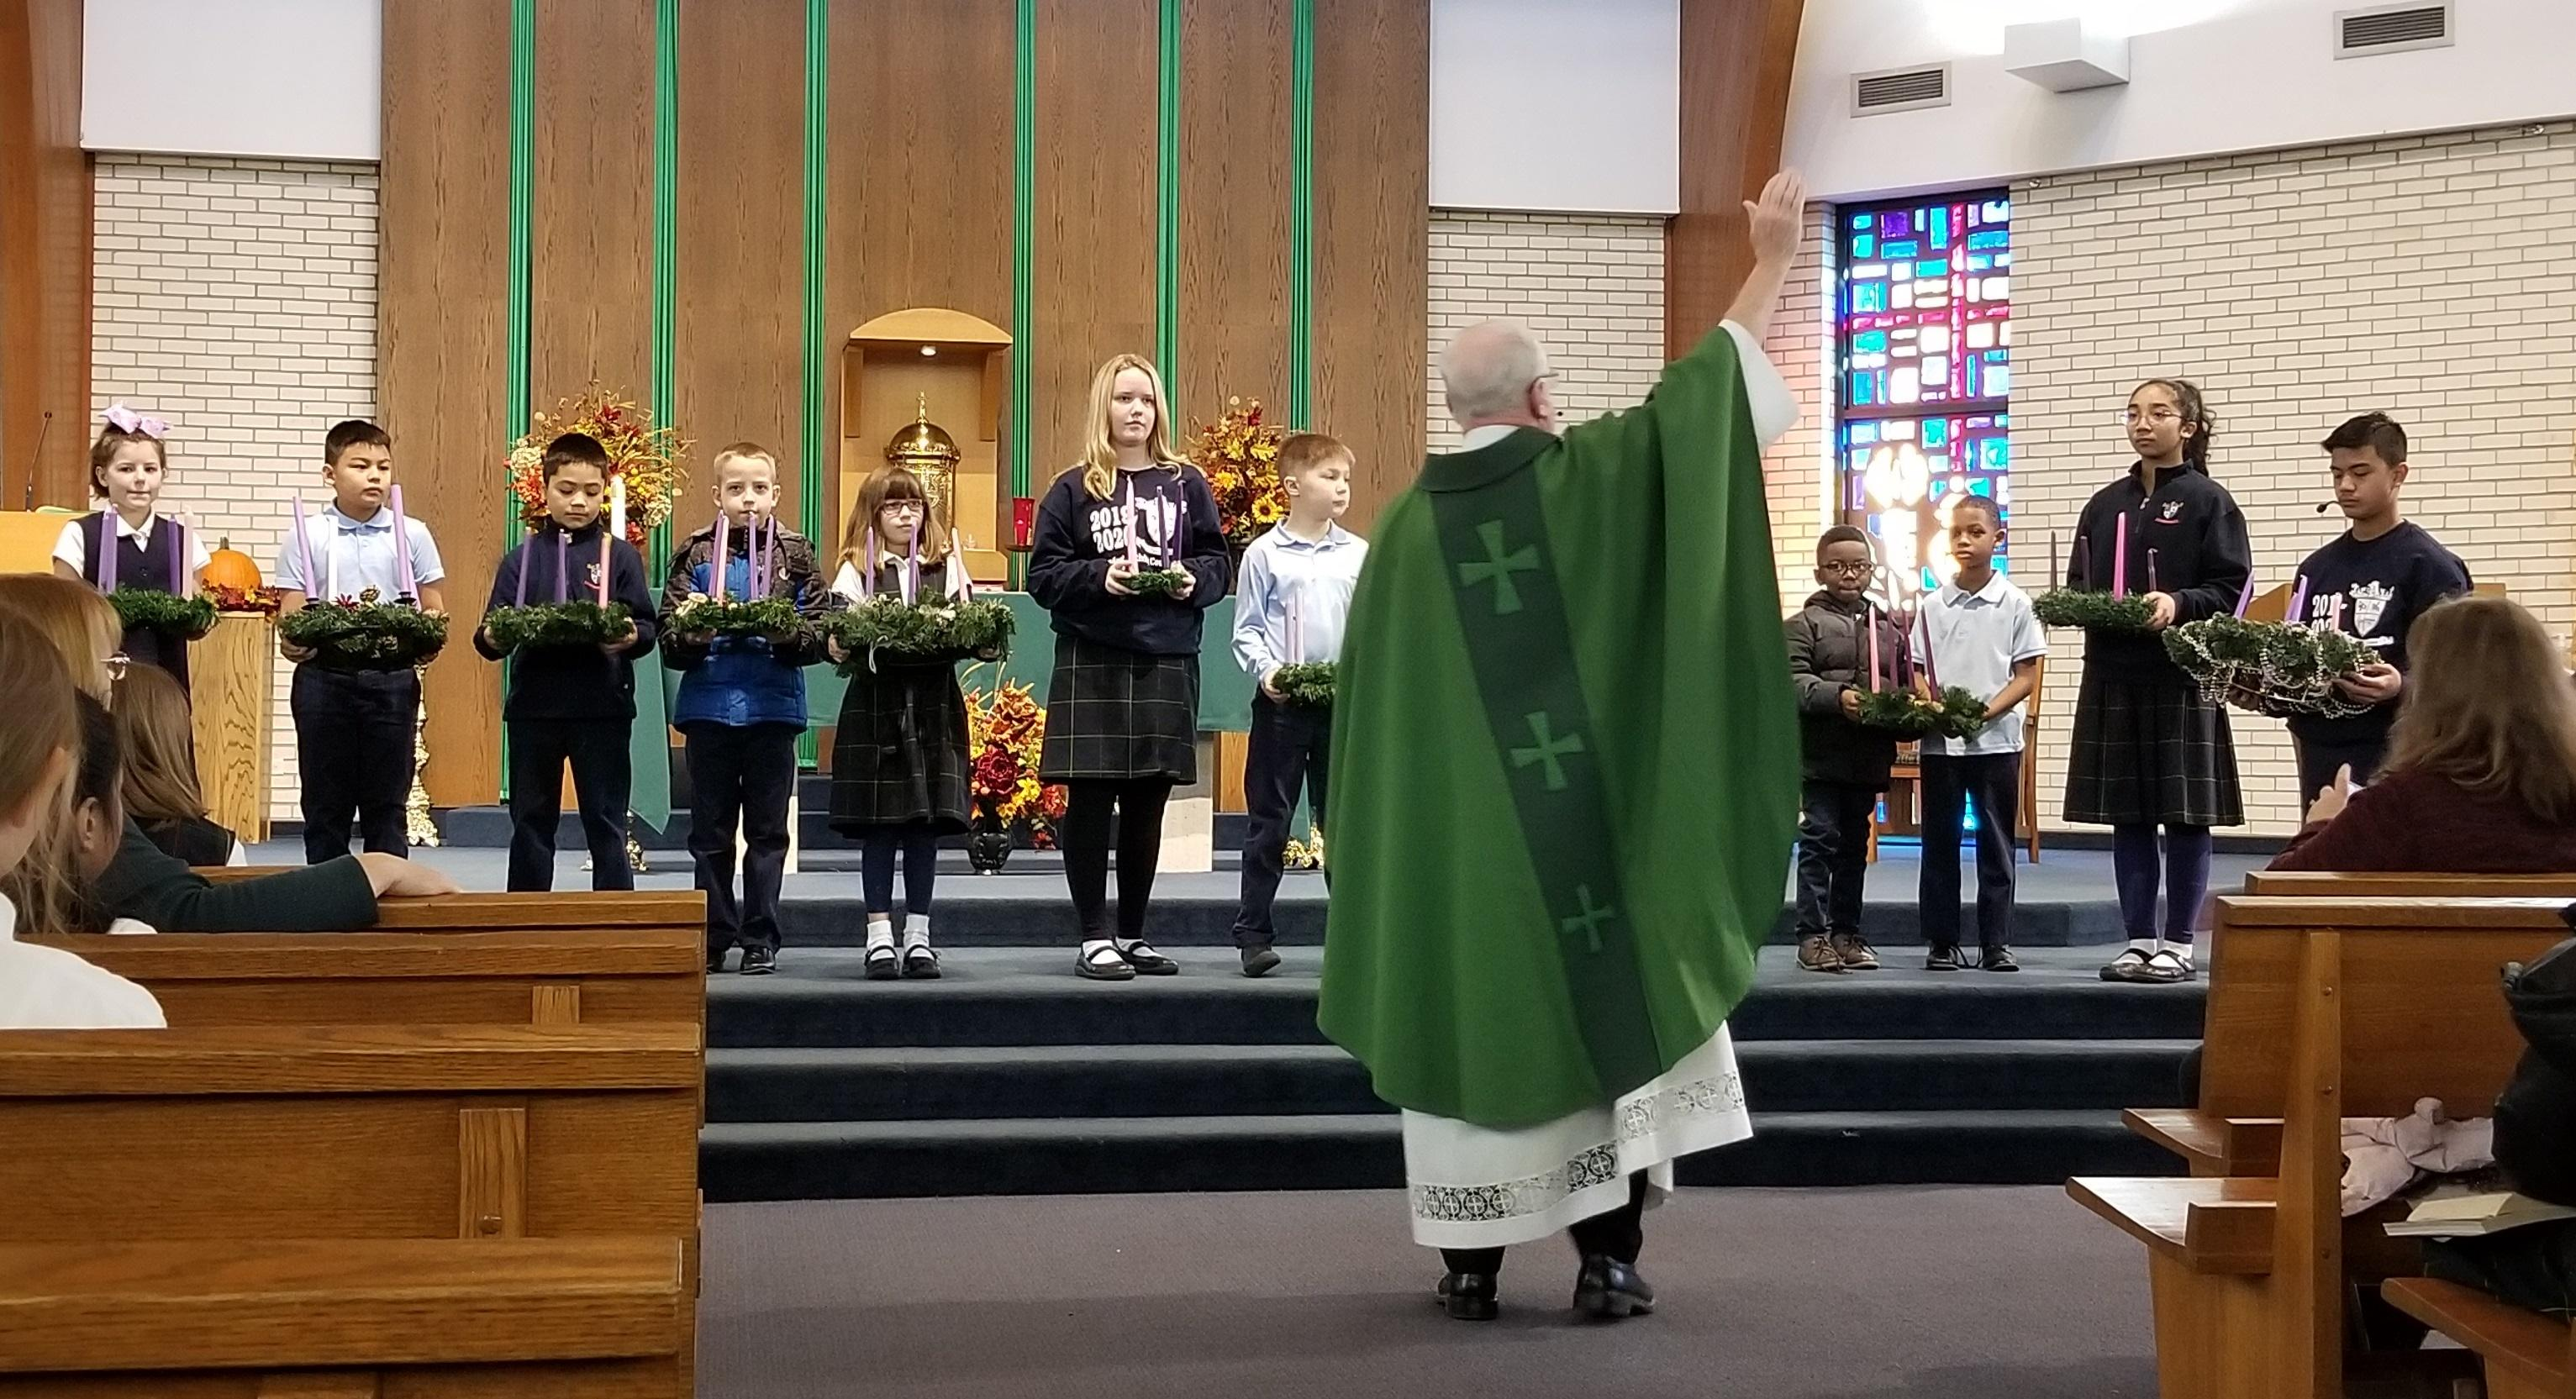 Father blesses wreaths